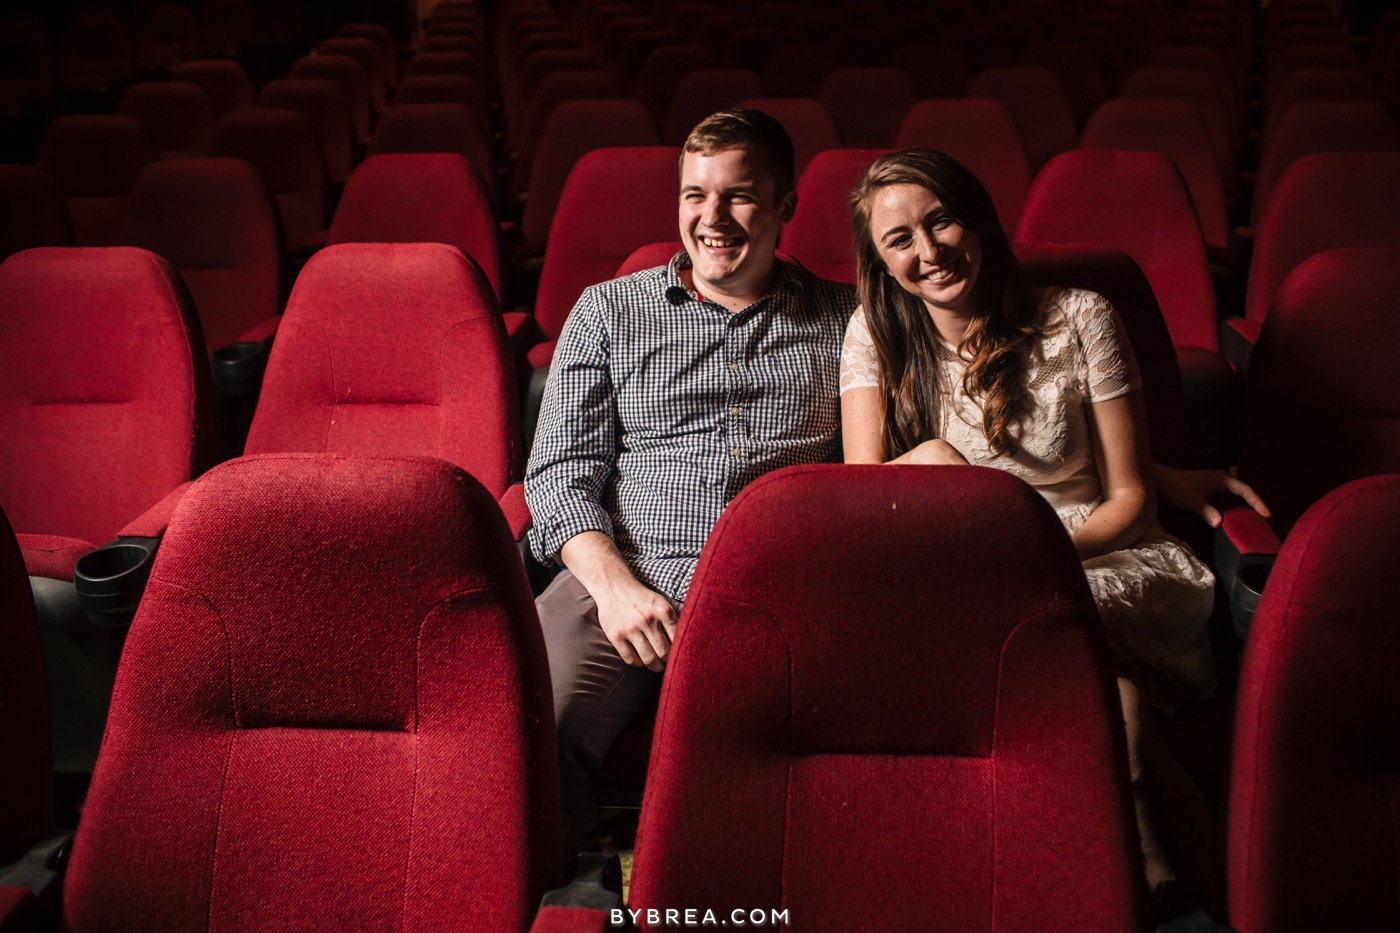 Senator Theater engagement couple in movie seats laughing